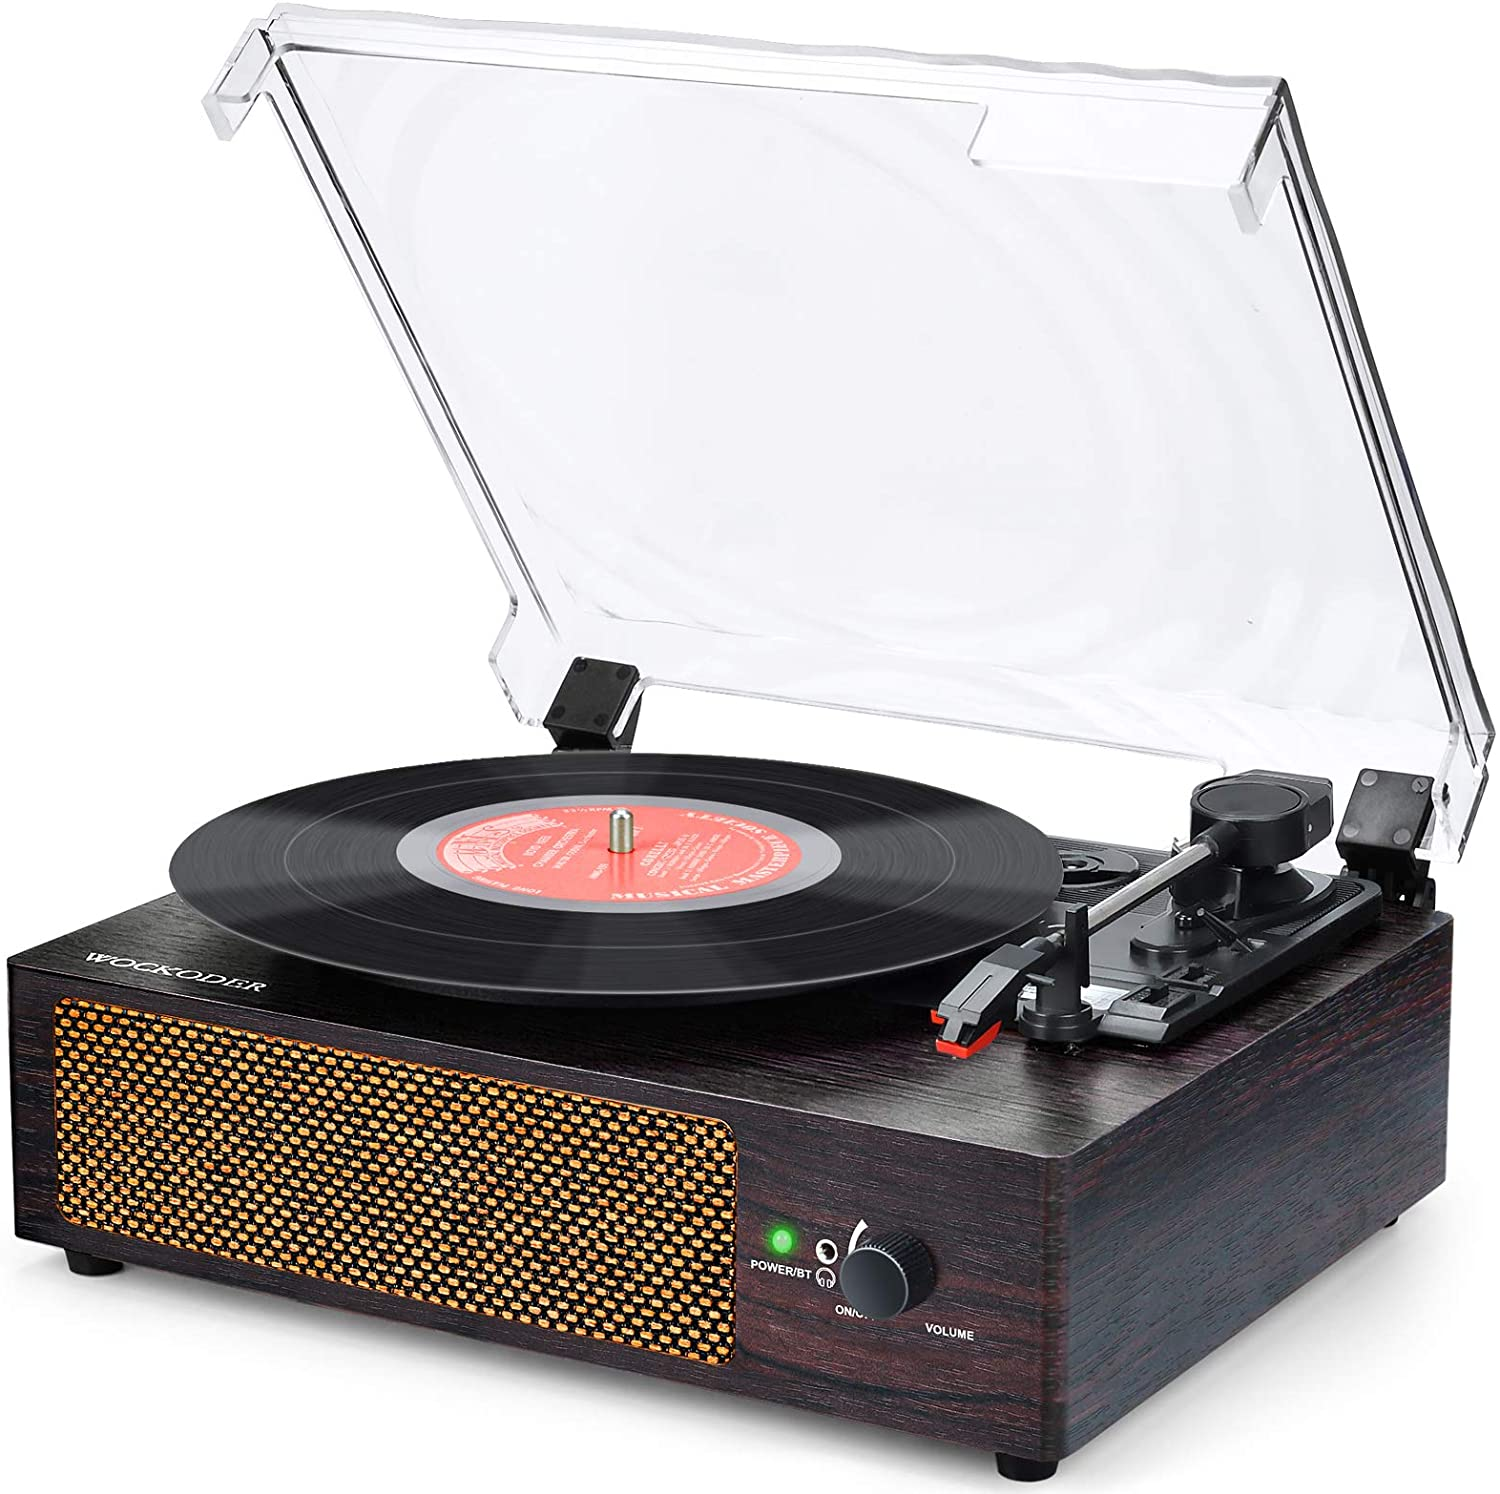 WOCKODER Vinyl Record Player with Stereo